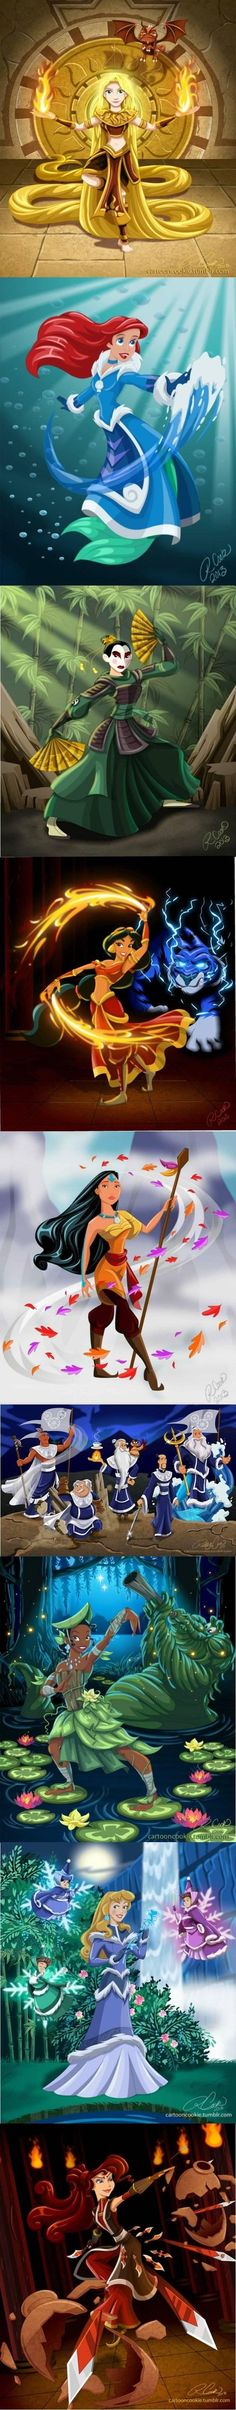 Disney as Avatar characters! Love it! :)